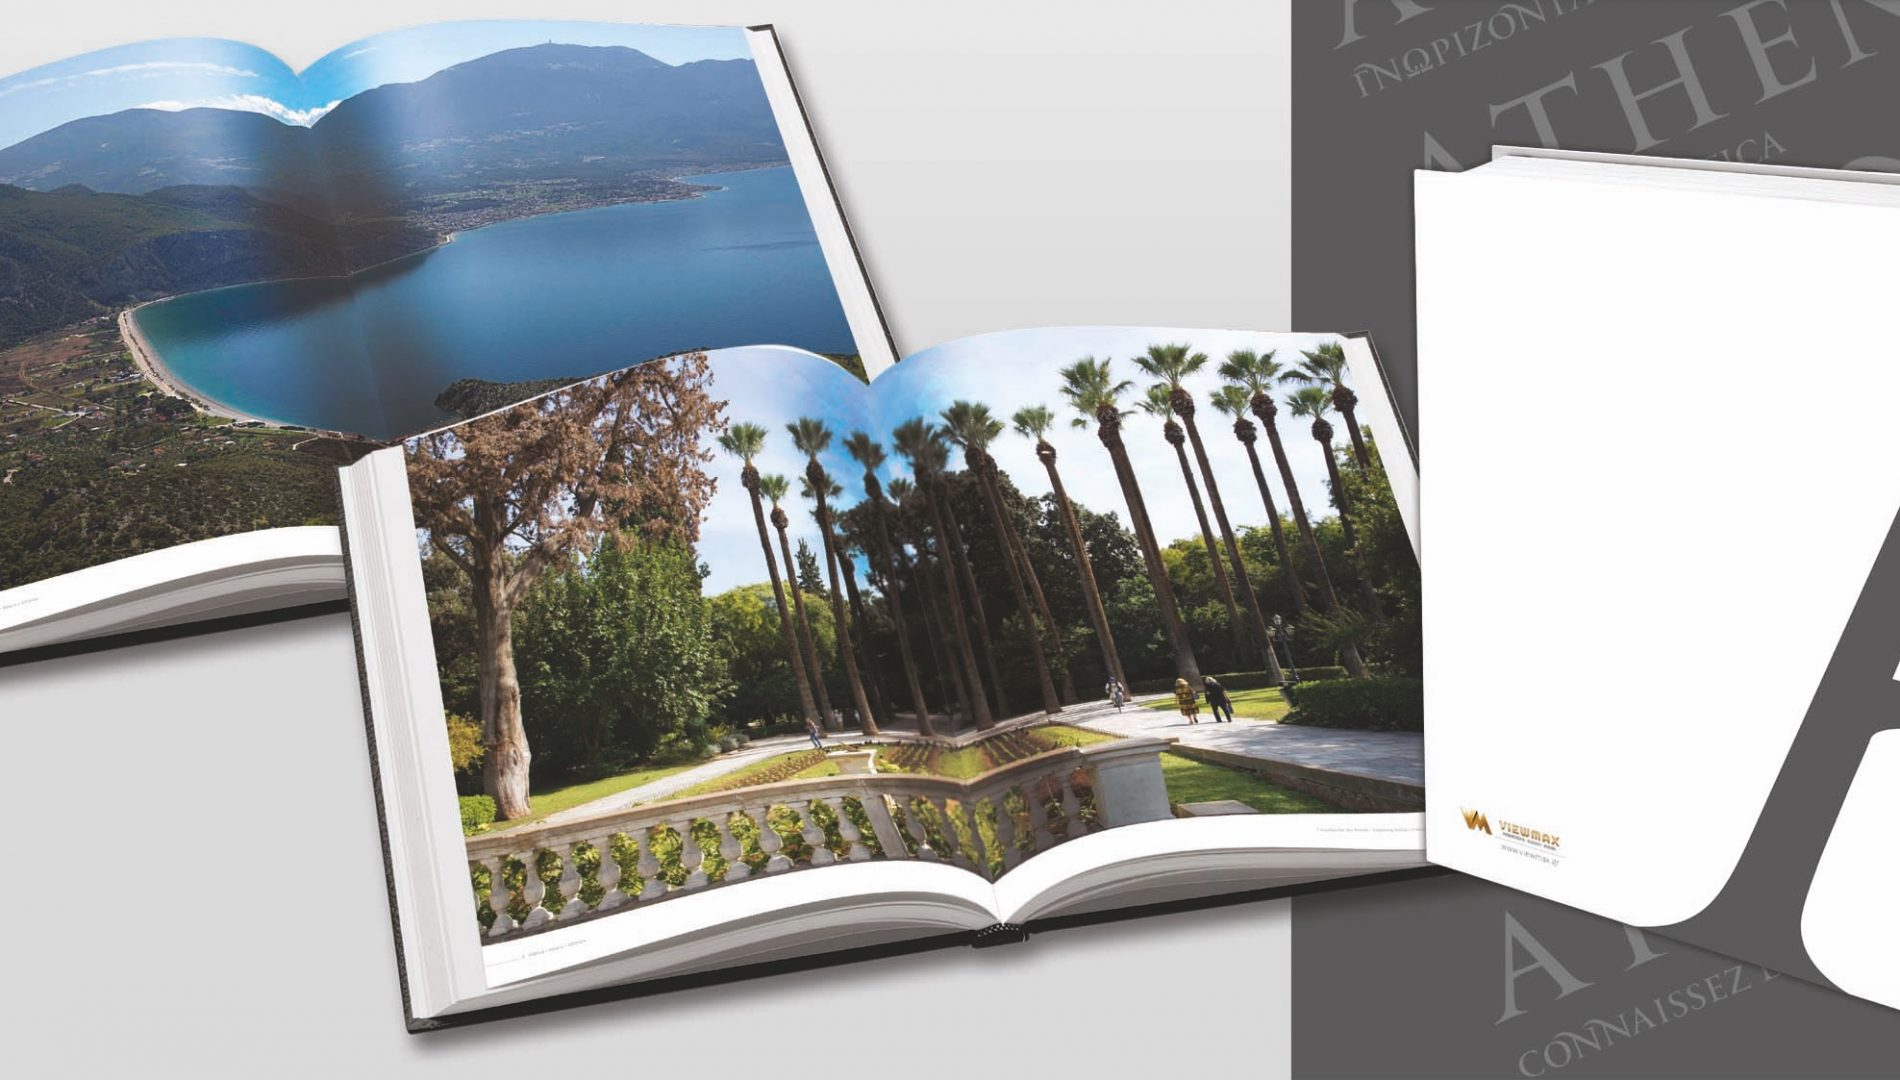 athens-book-images-01 (1)